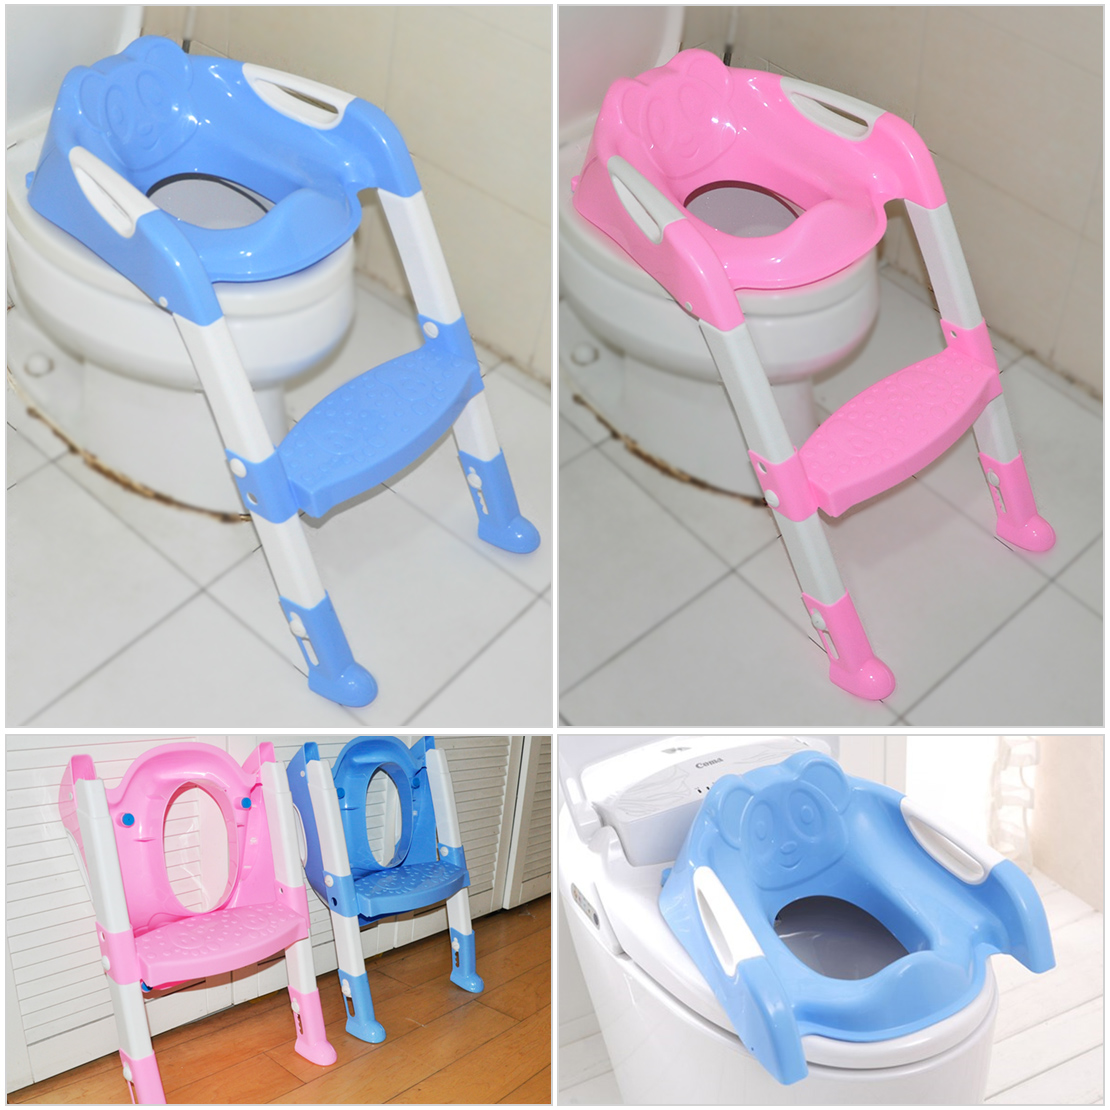 childrens potty chairs buy chair covers nz kids toilet trainer seat toddler with ladder